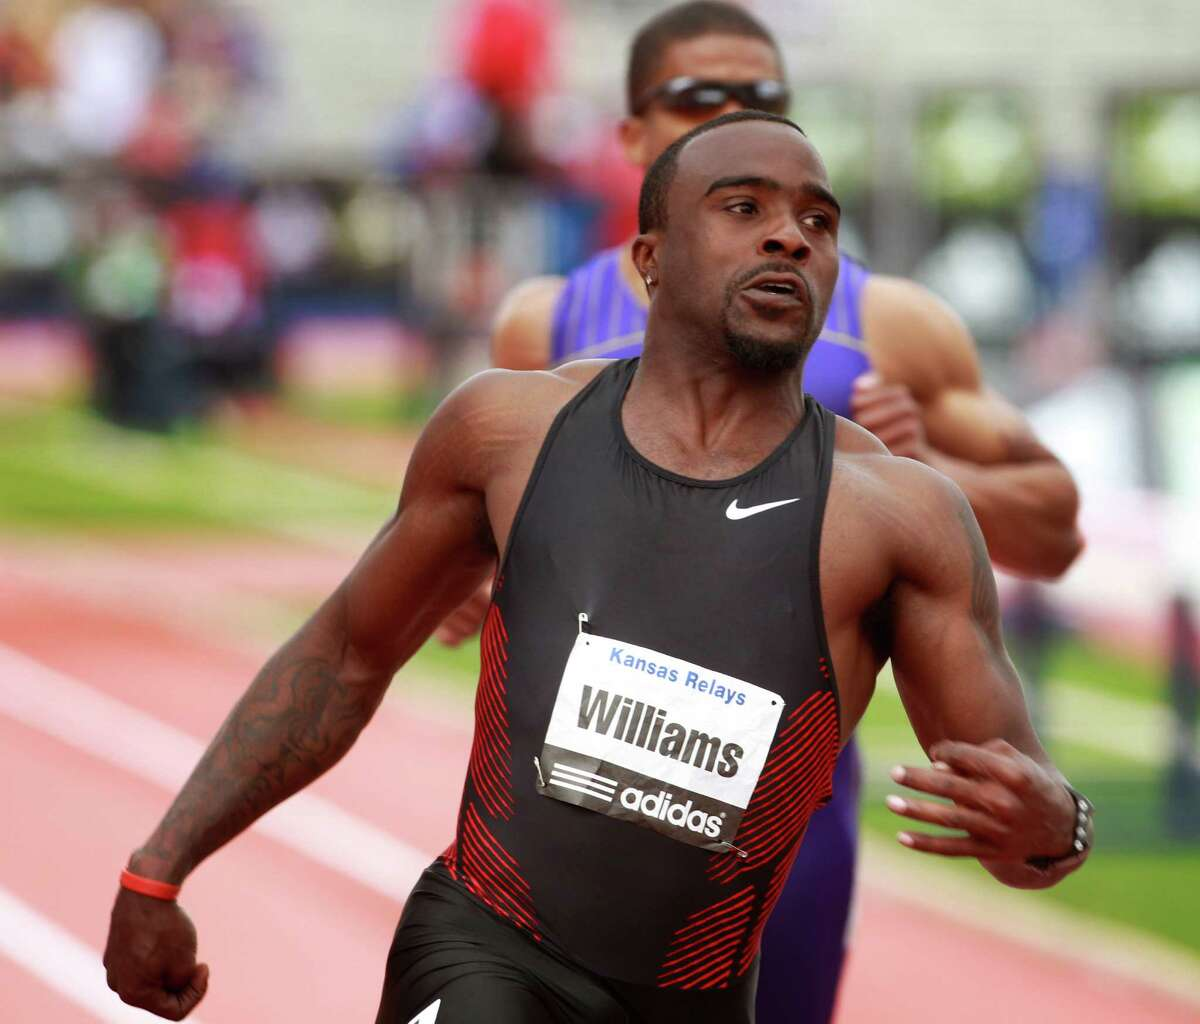 Ivory Williams, running unattached, looks to the clock after crossing the finish line in the men's invitational 100 meter dash during the Kansas Relays athletics meet, Saturday, April 23, 2011, in Lawrence, Kan. Williams won the race with a time of 10.05. (AP Photo/Orlin Wagner)